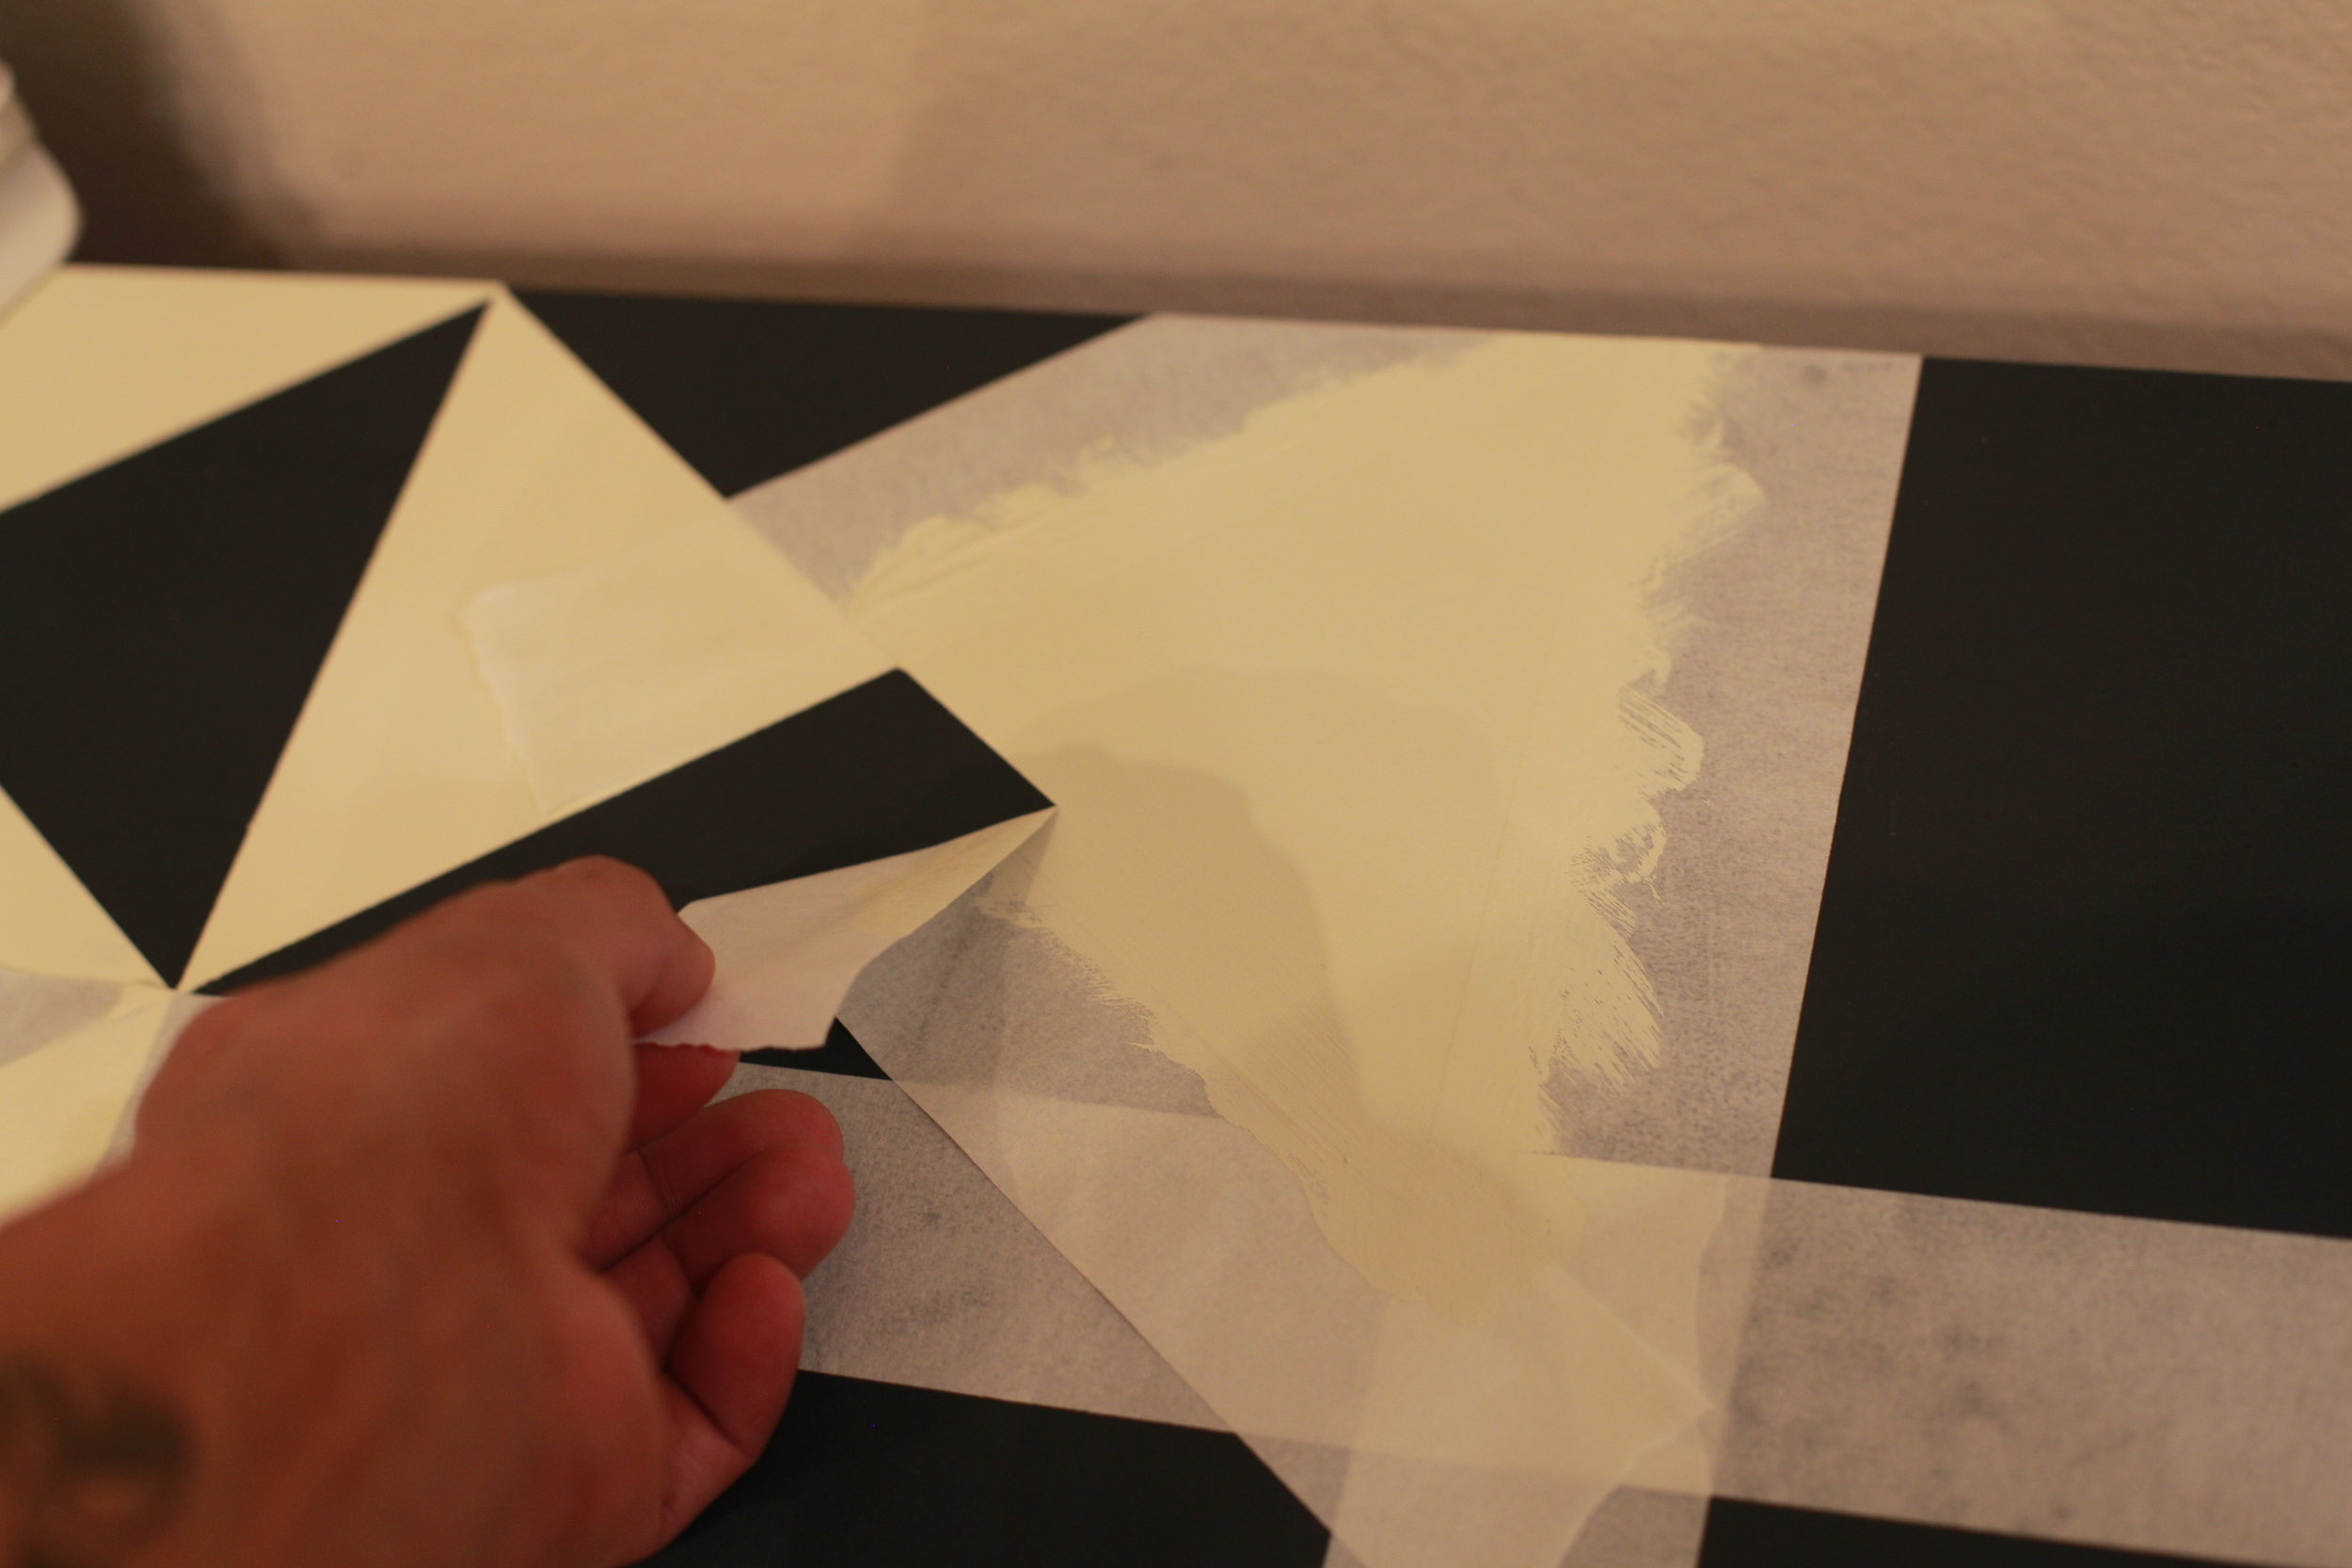 Now it's time to have some fun! Start removing the painters tape to see your beautiful work!